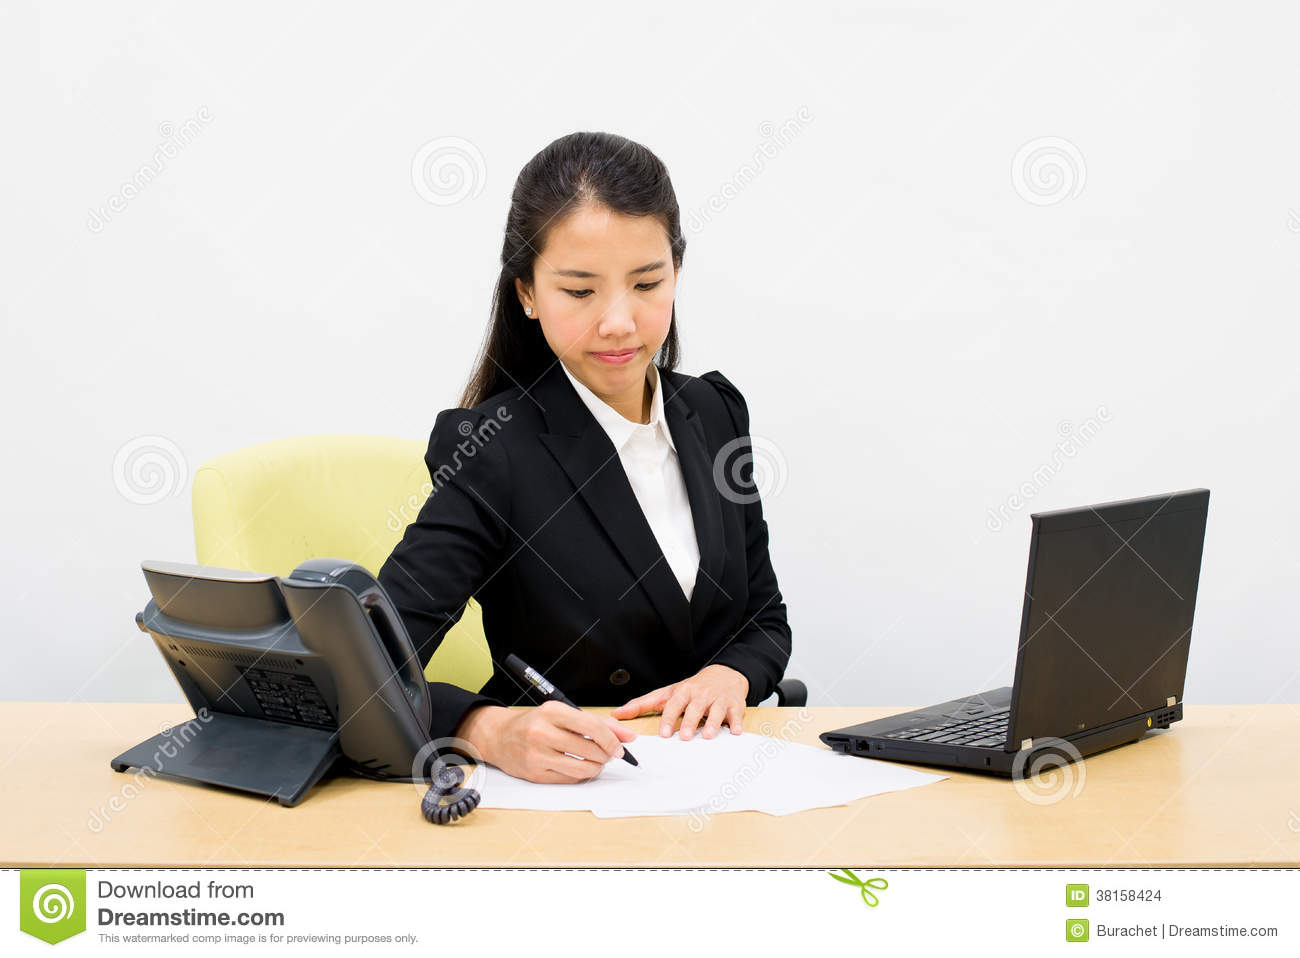 essay about women in business This paper discusses that women are still struggling in the business world.